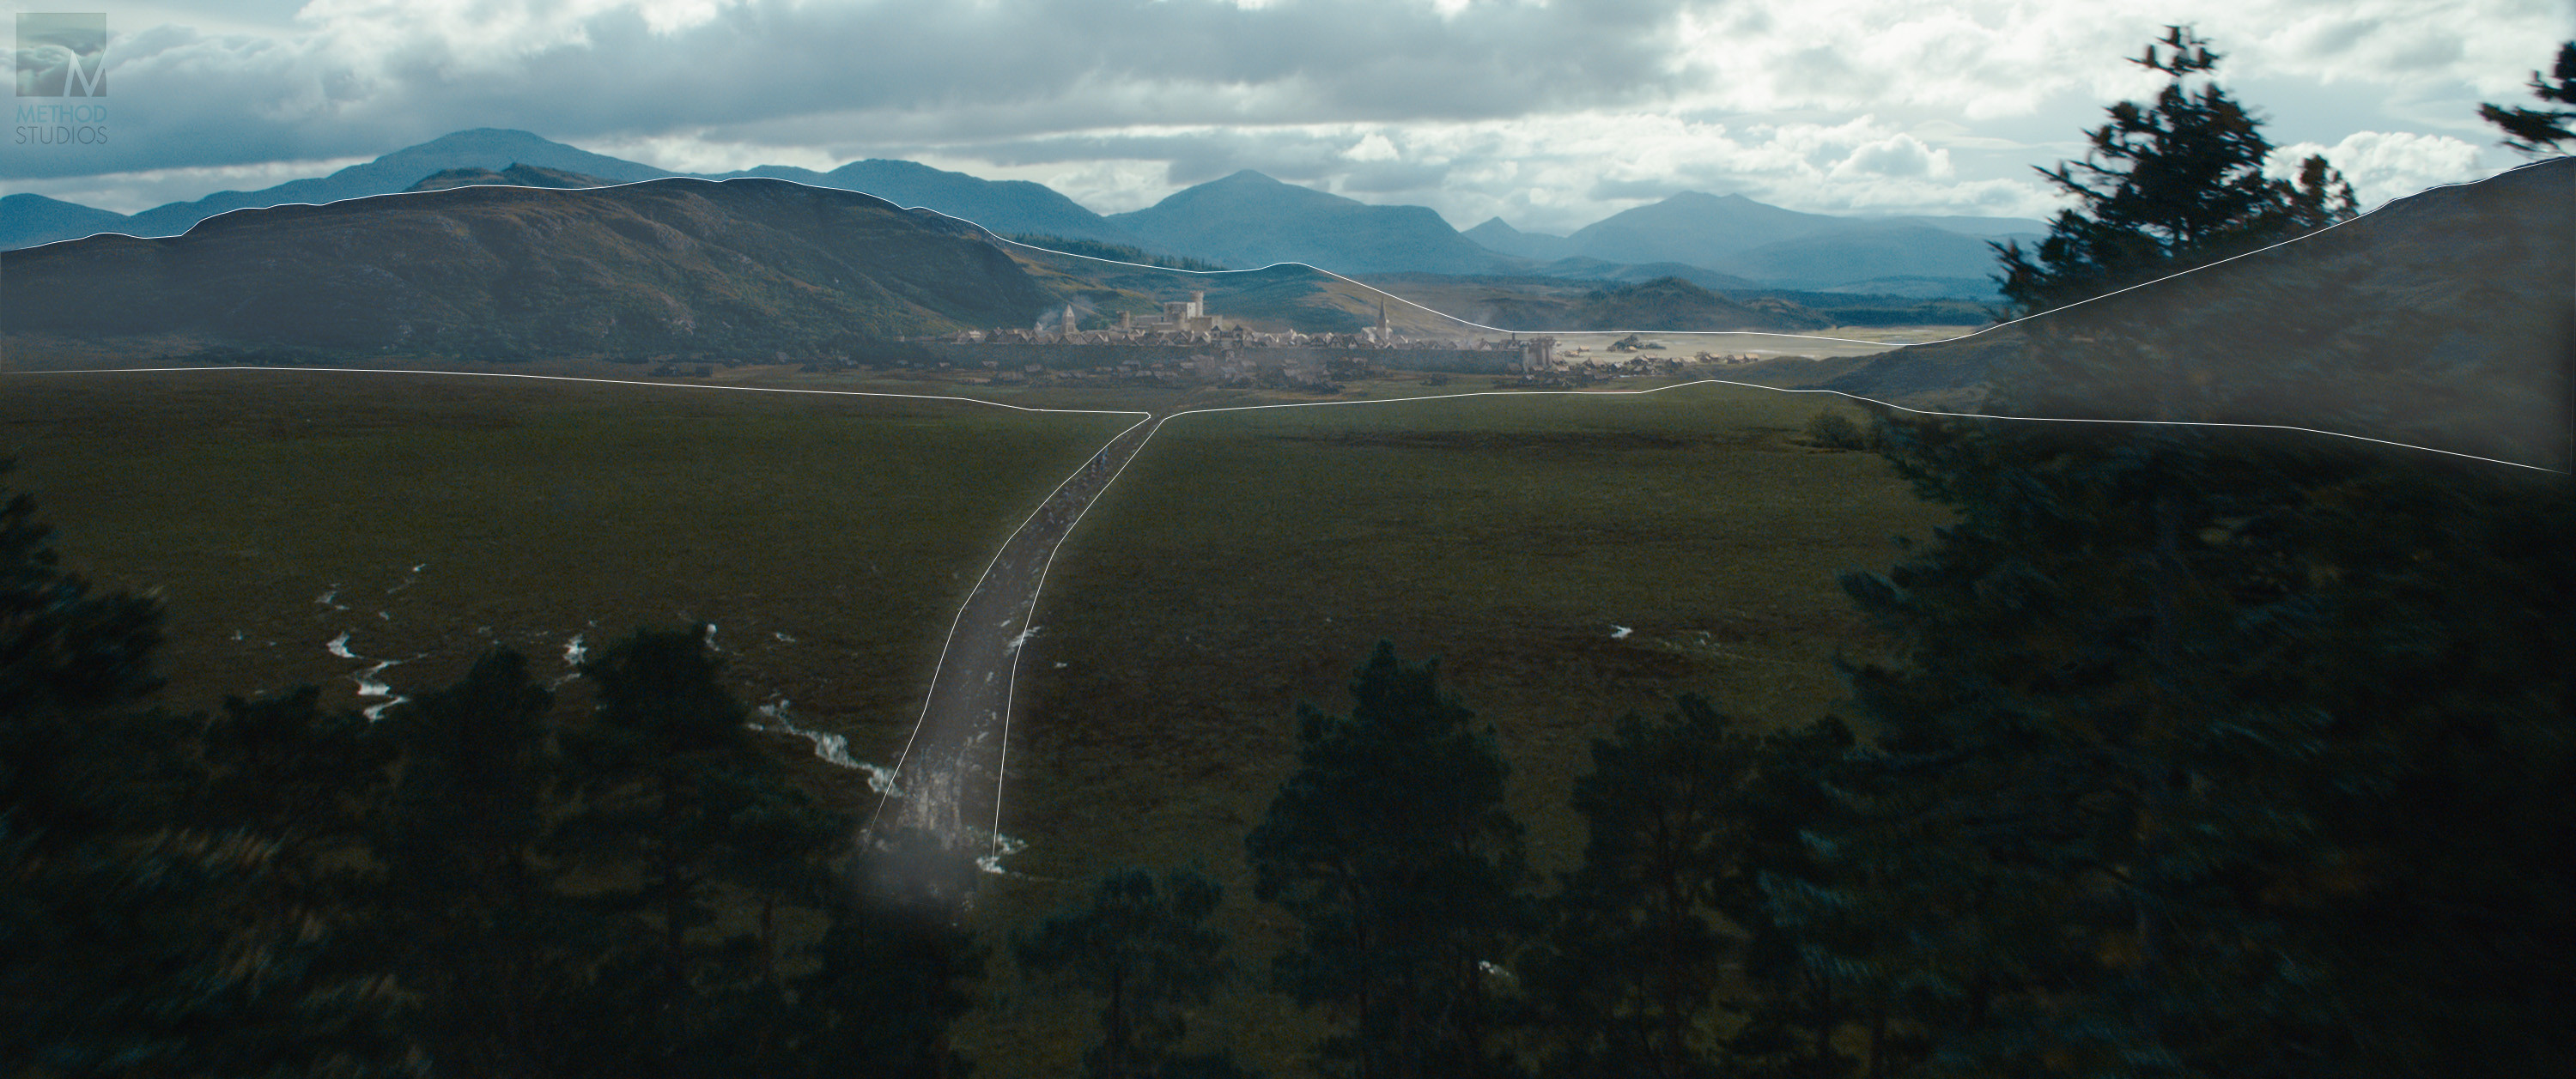 Areas edited in matte painting stage